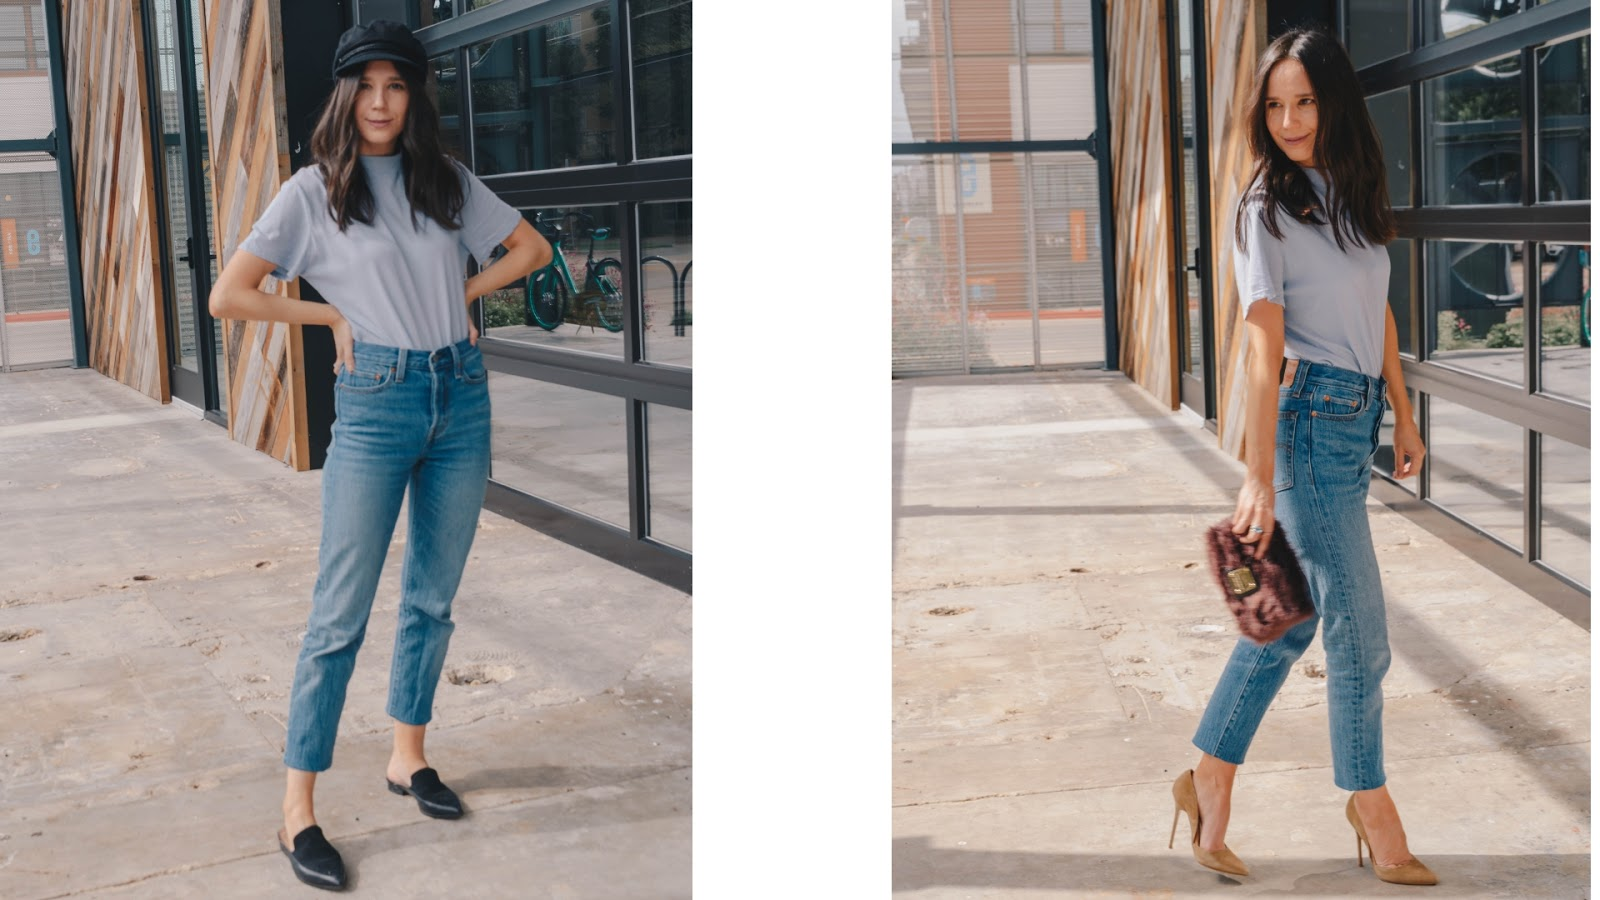 Two ways to style a mock tee